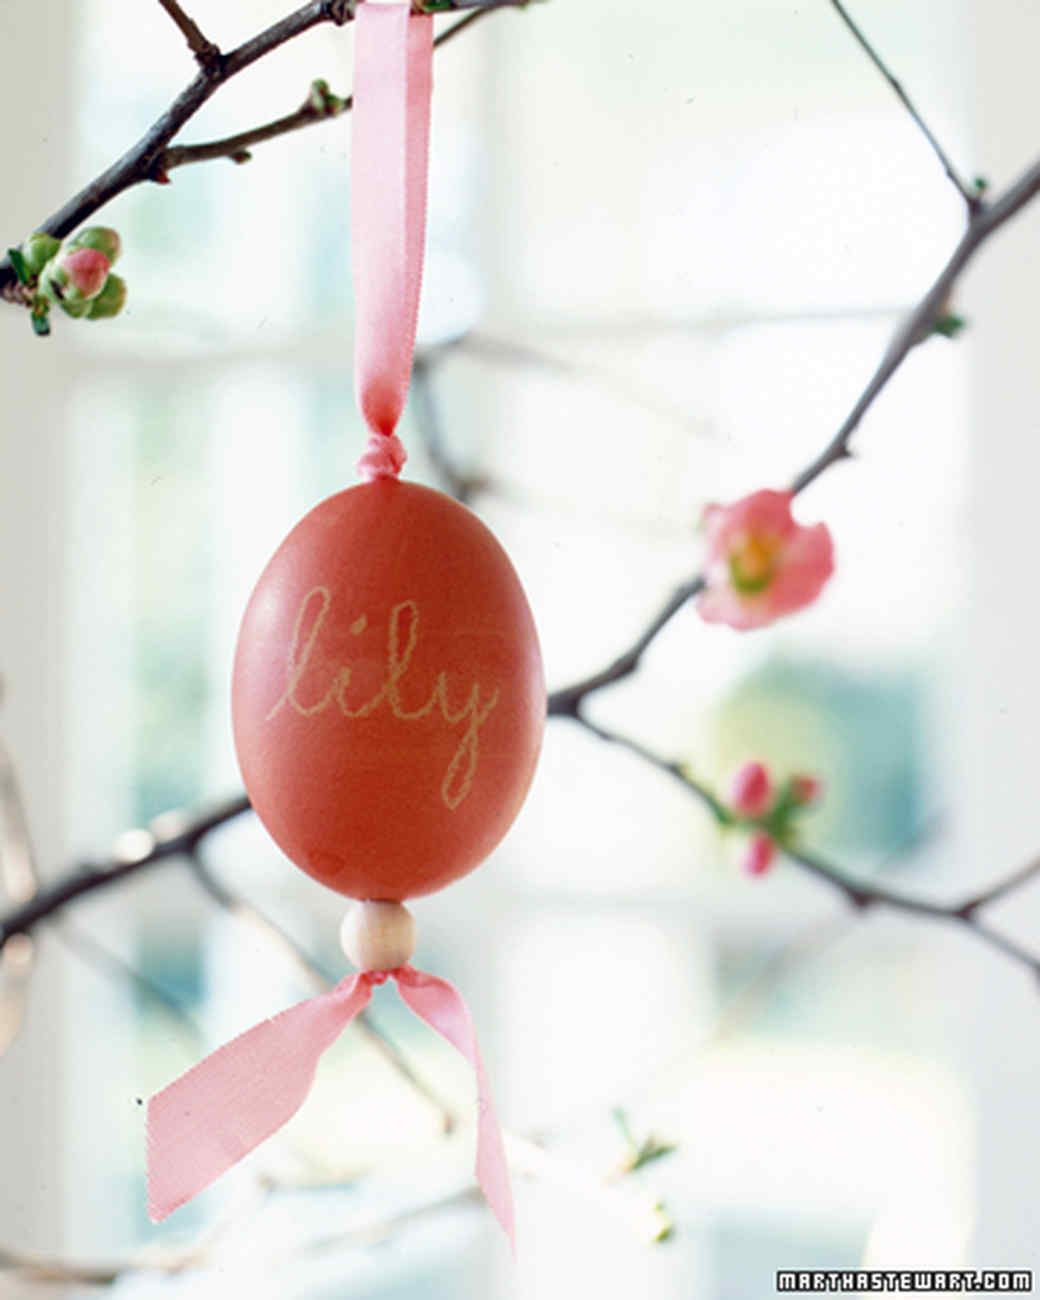 Ornaments with names on them - Beaded Egg Ornaments Martha Stewart Living Personalize Your Easter Eggs And Turn Them Into